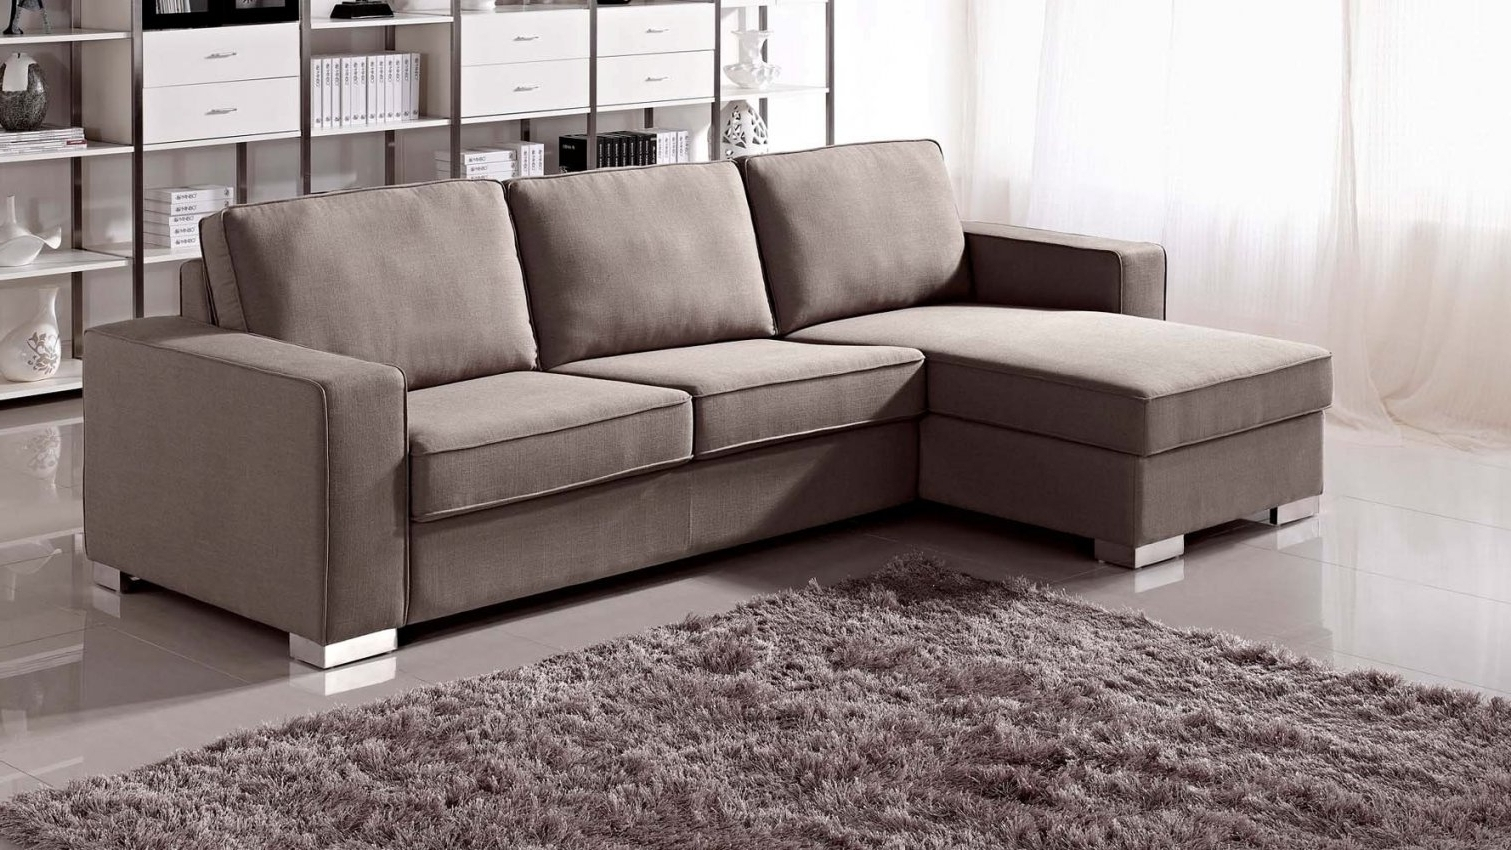 Sectional Sleeper Sofa With Chaise 29 In Sofa Design Ideas With Regard To Most Recent Sleeper Sofa Chaises (View 8 of 15)